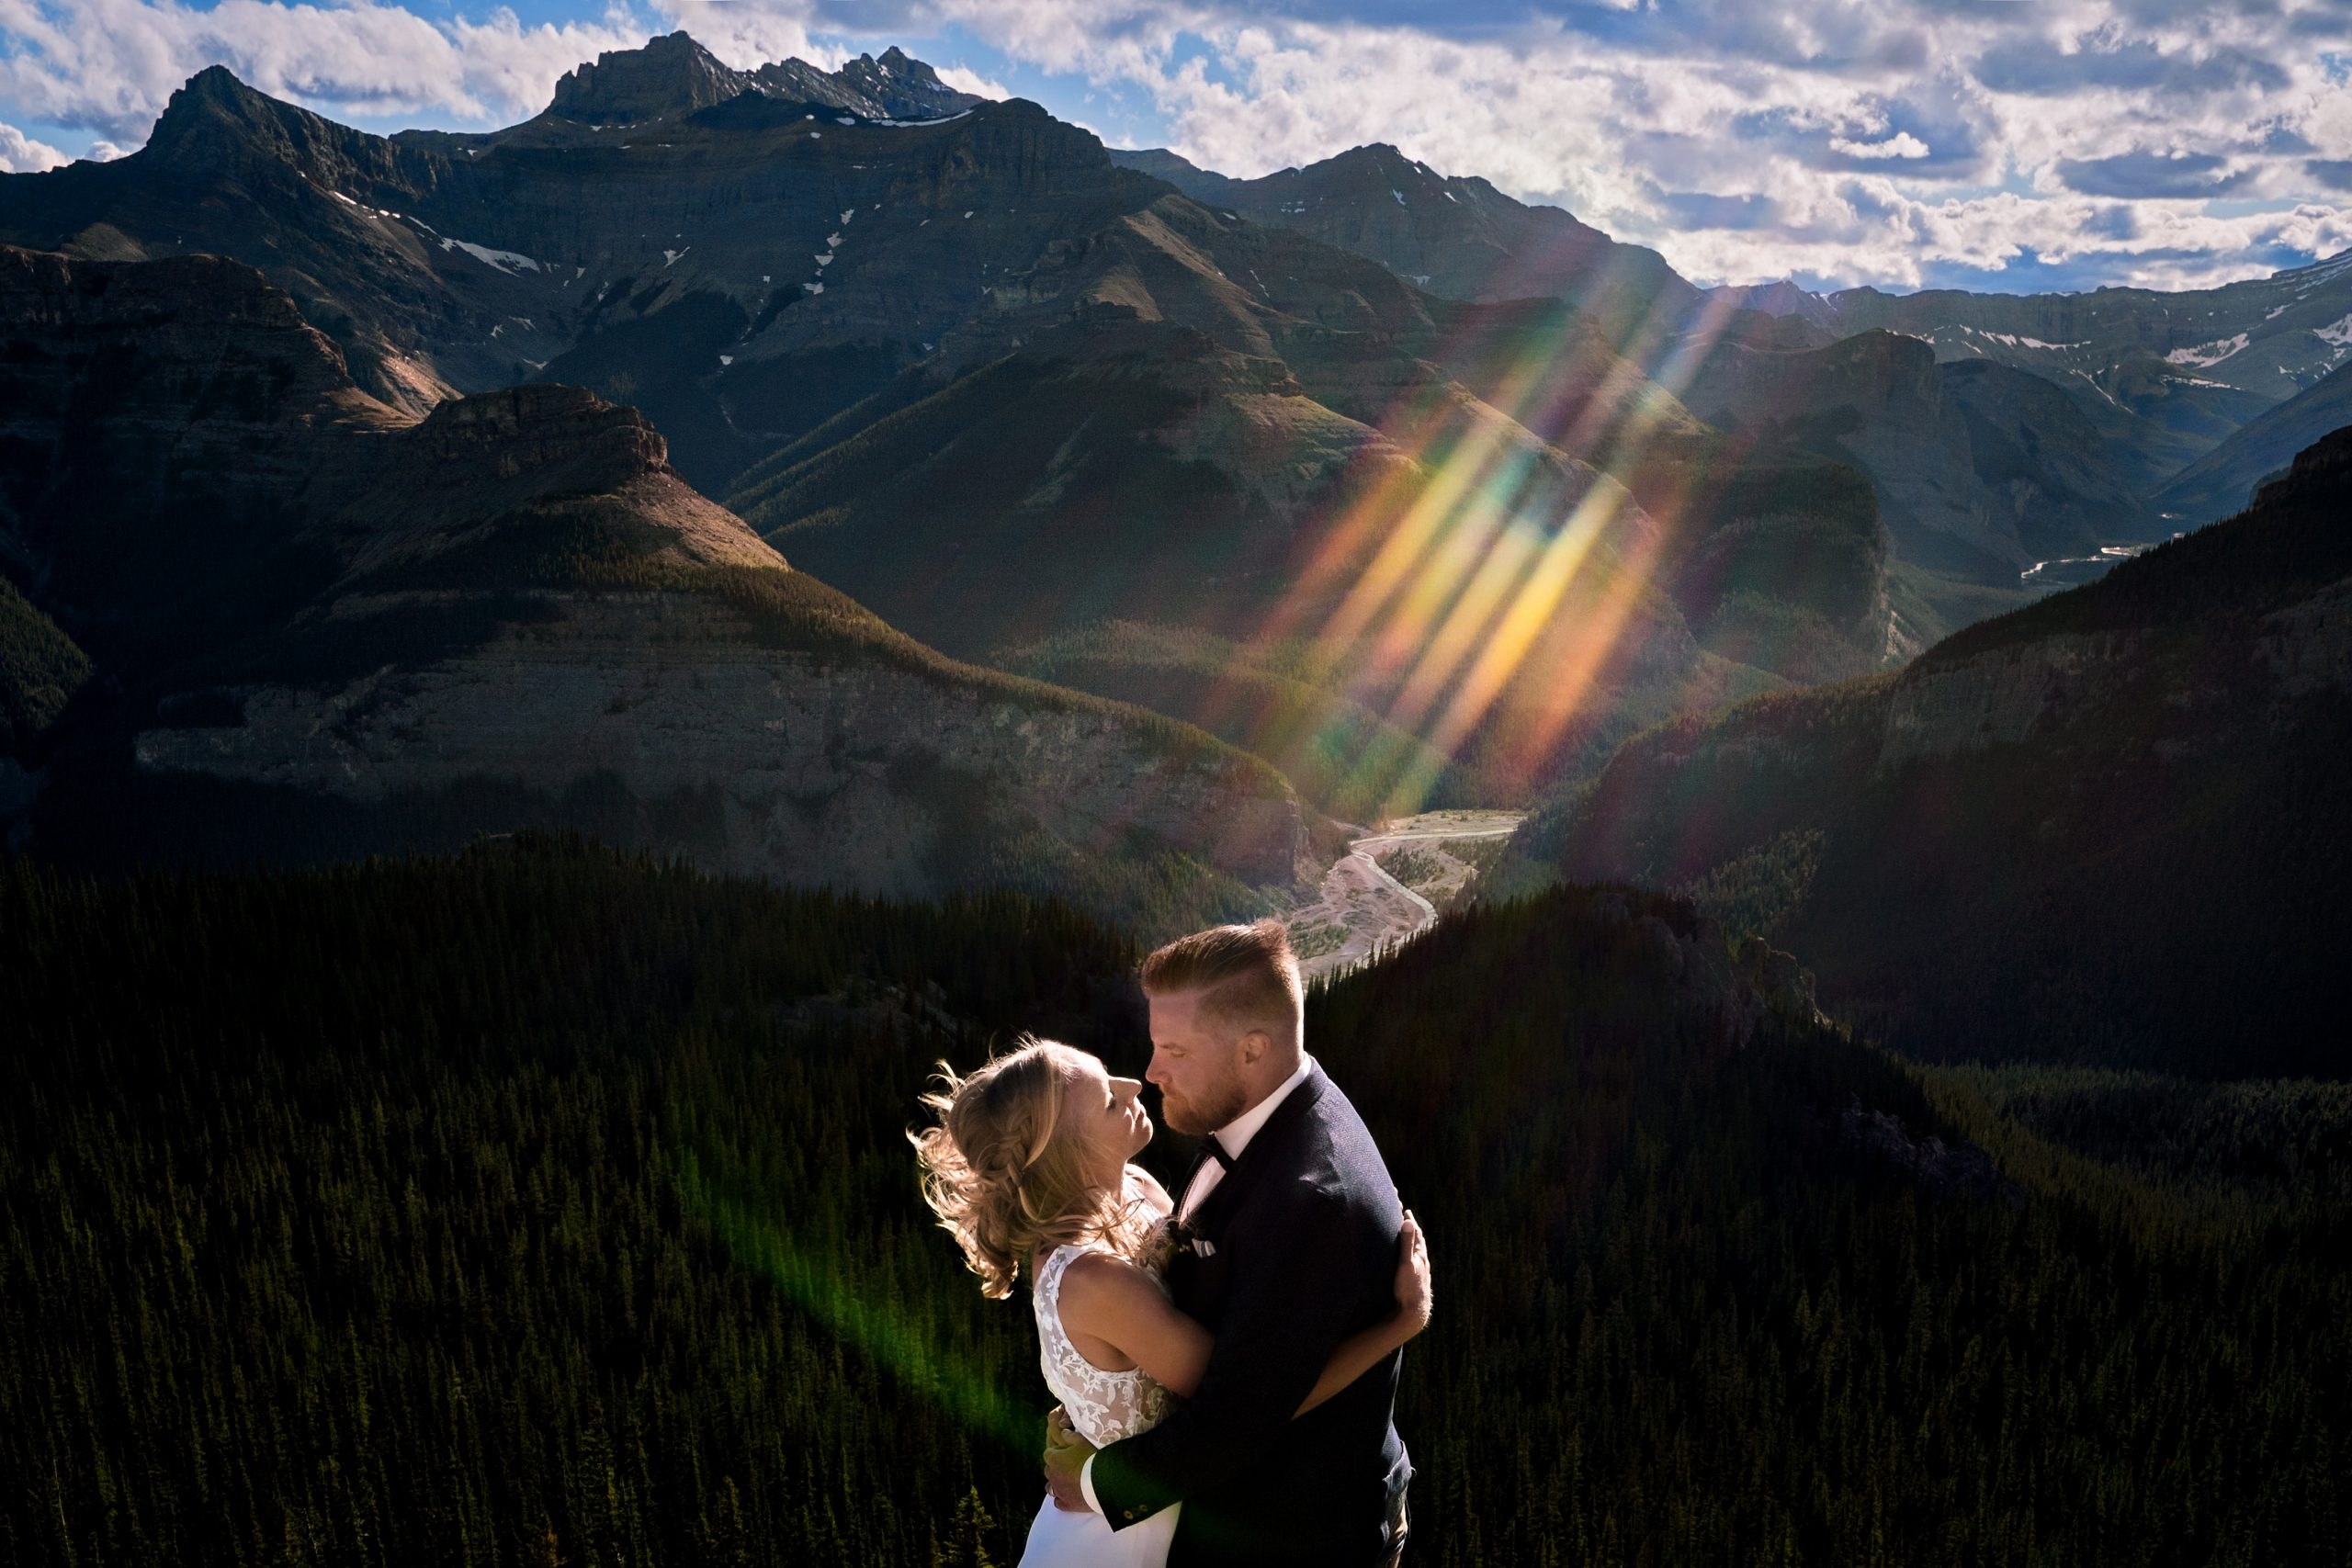 photo of bride and groom hugging at the top of a mountain